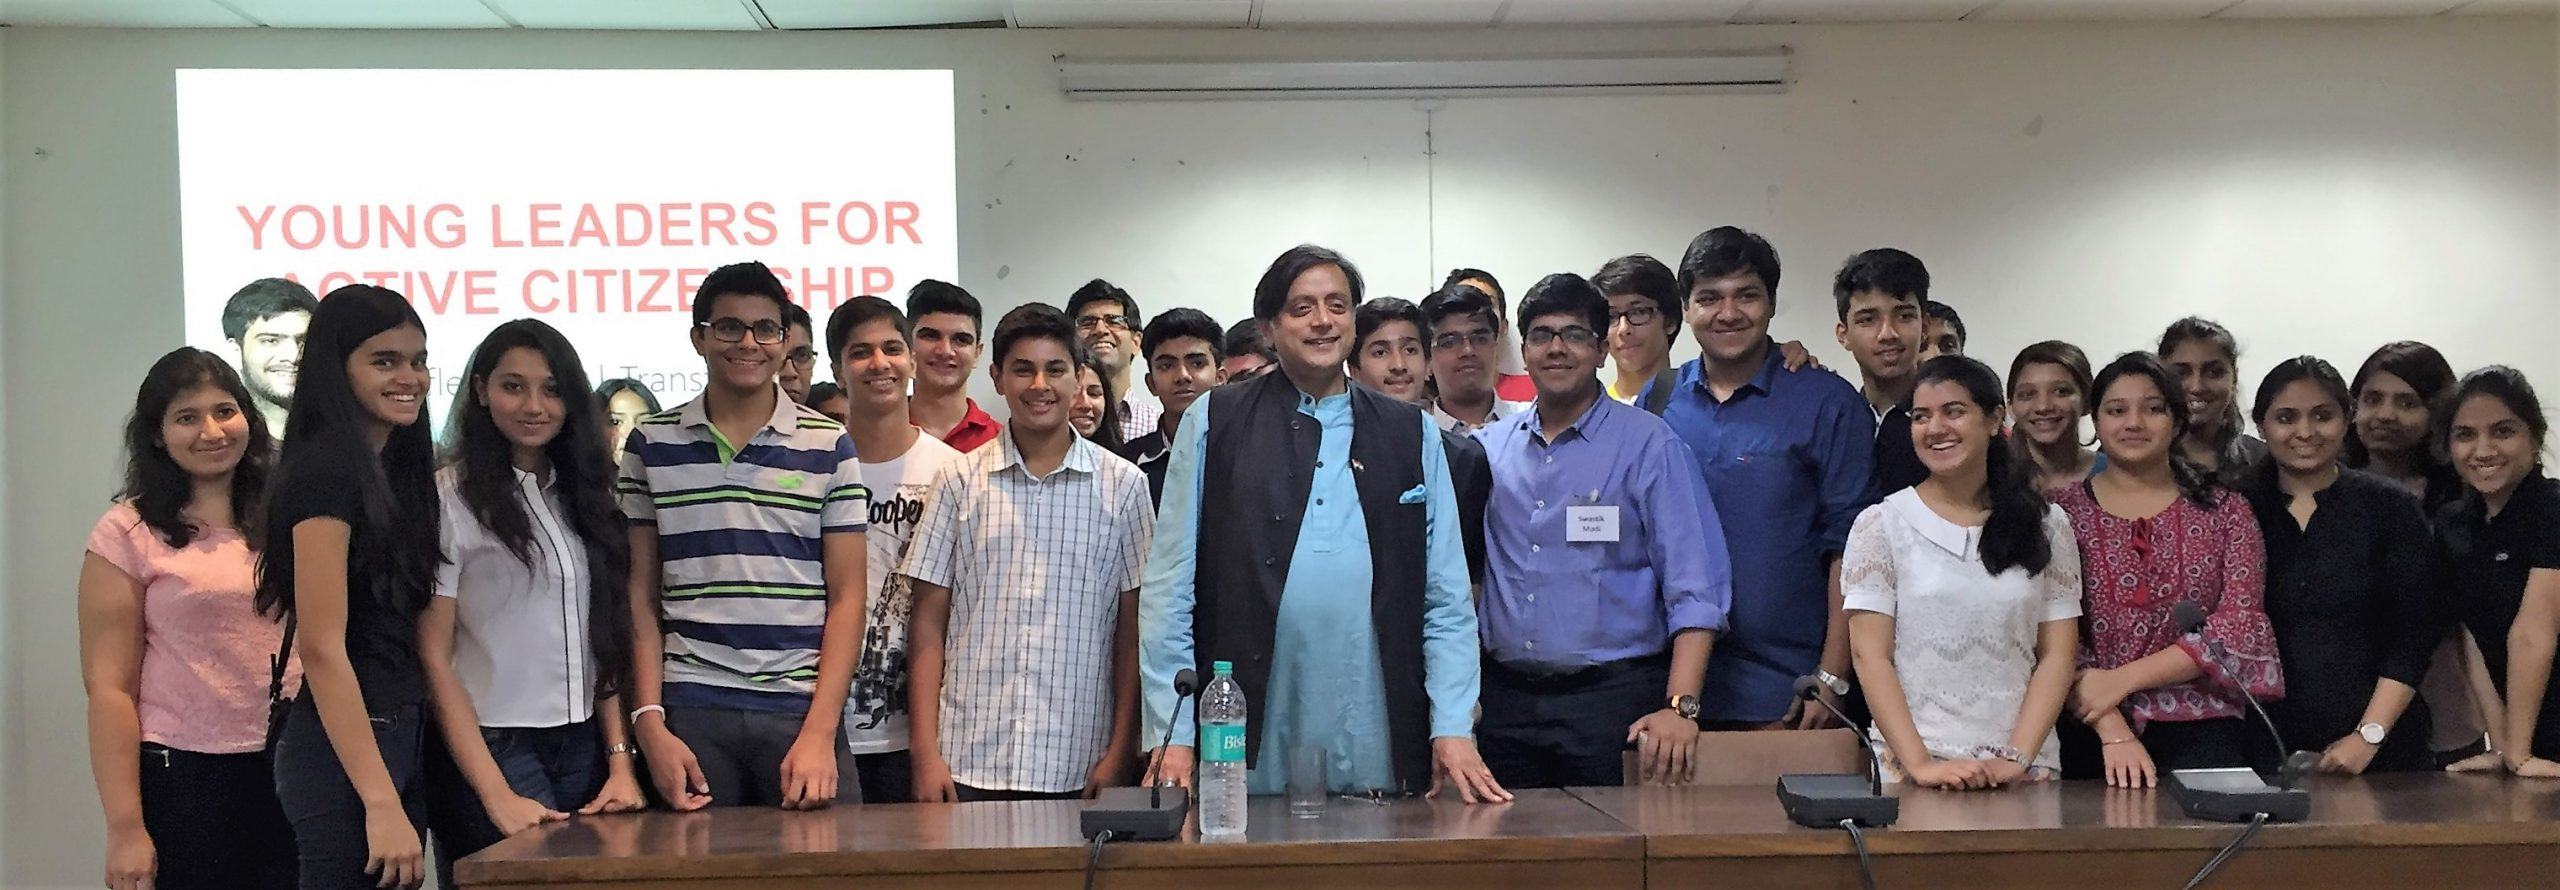 Meeting with Dr. Shashi Tharoor